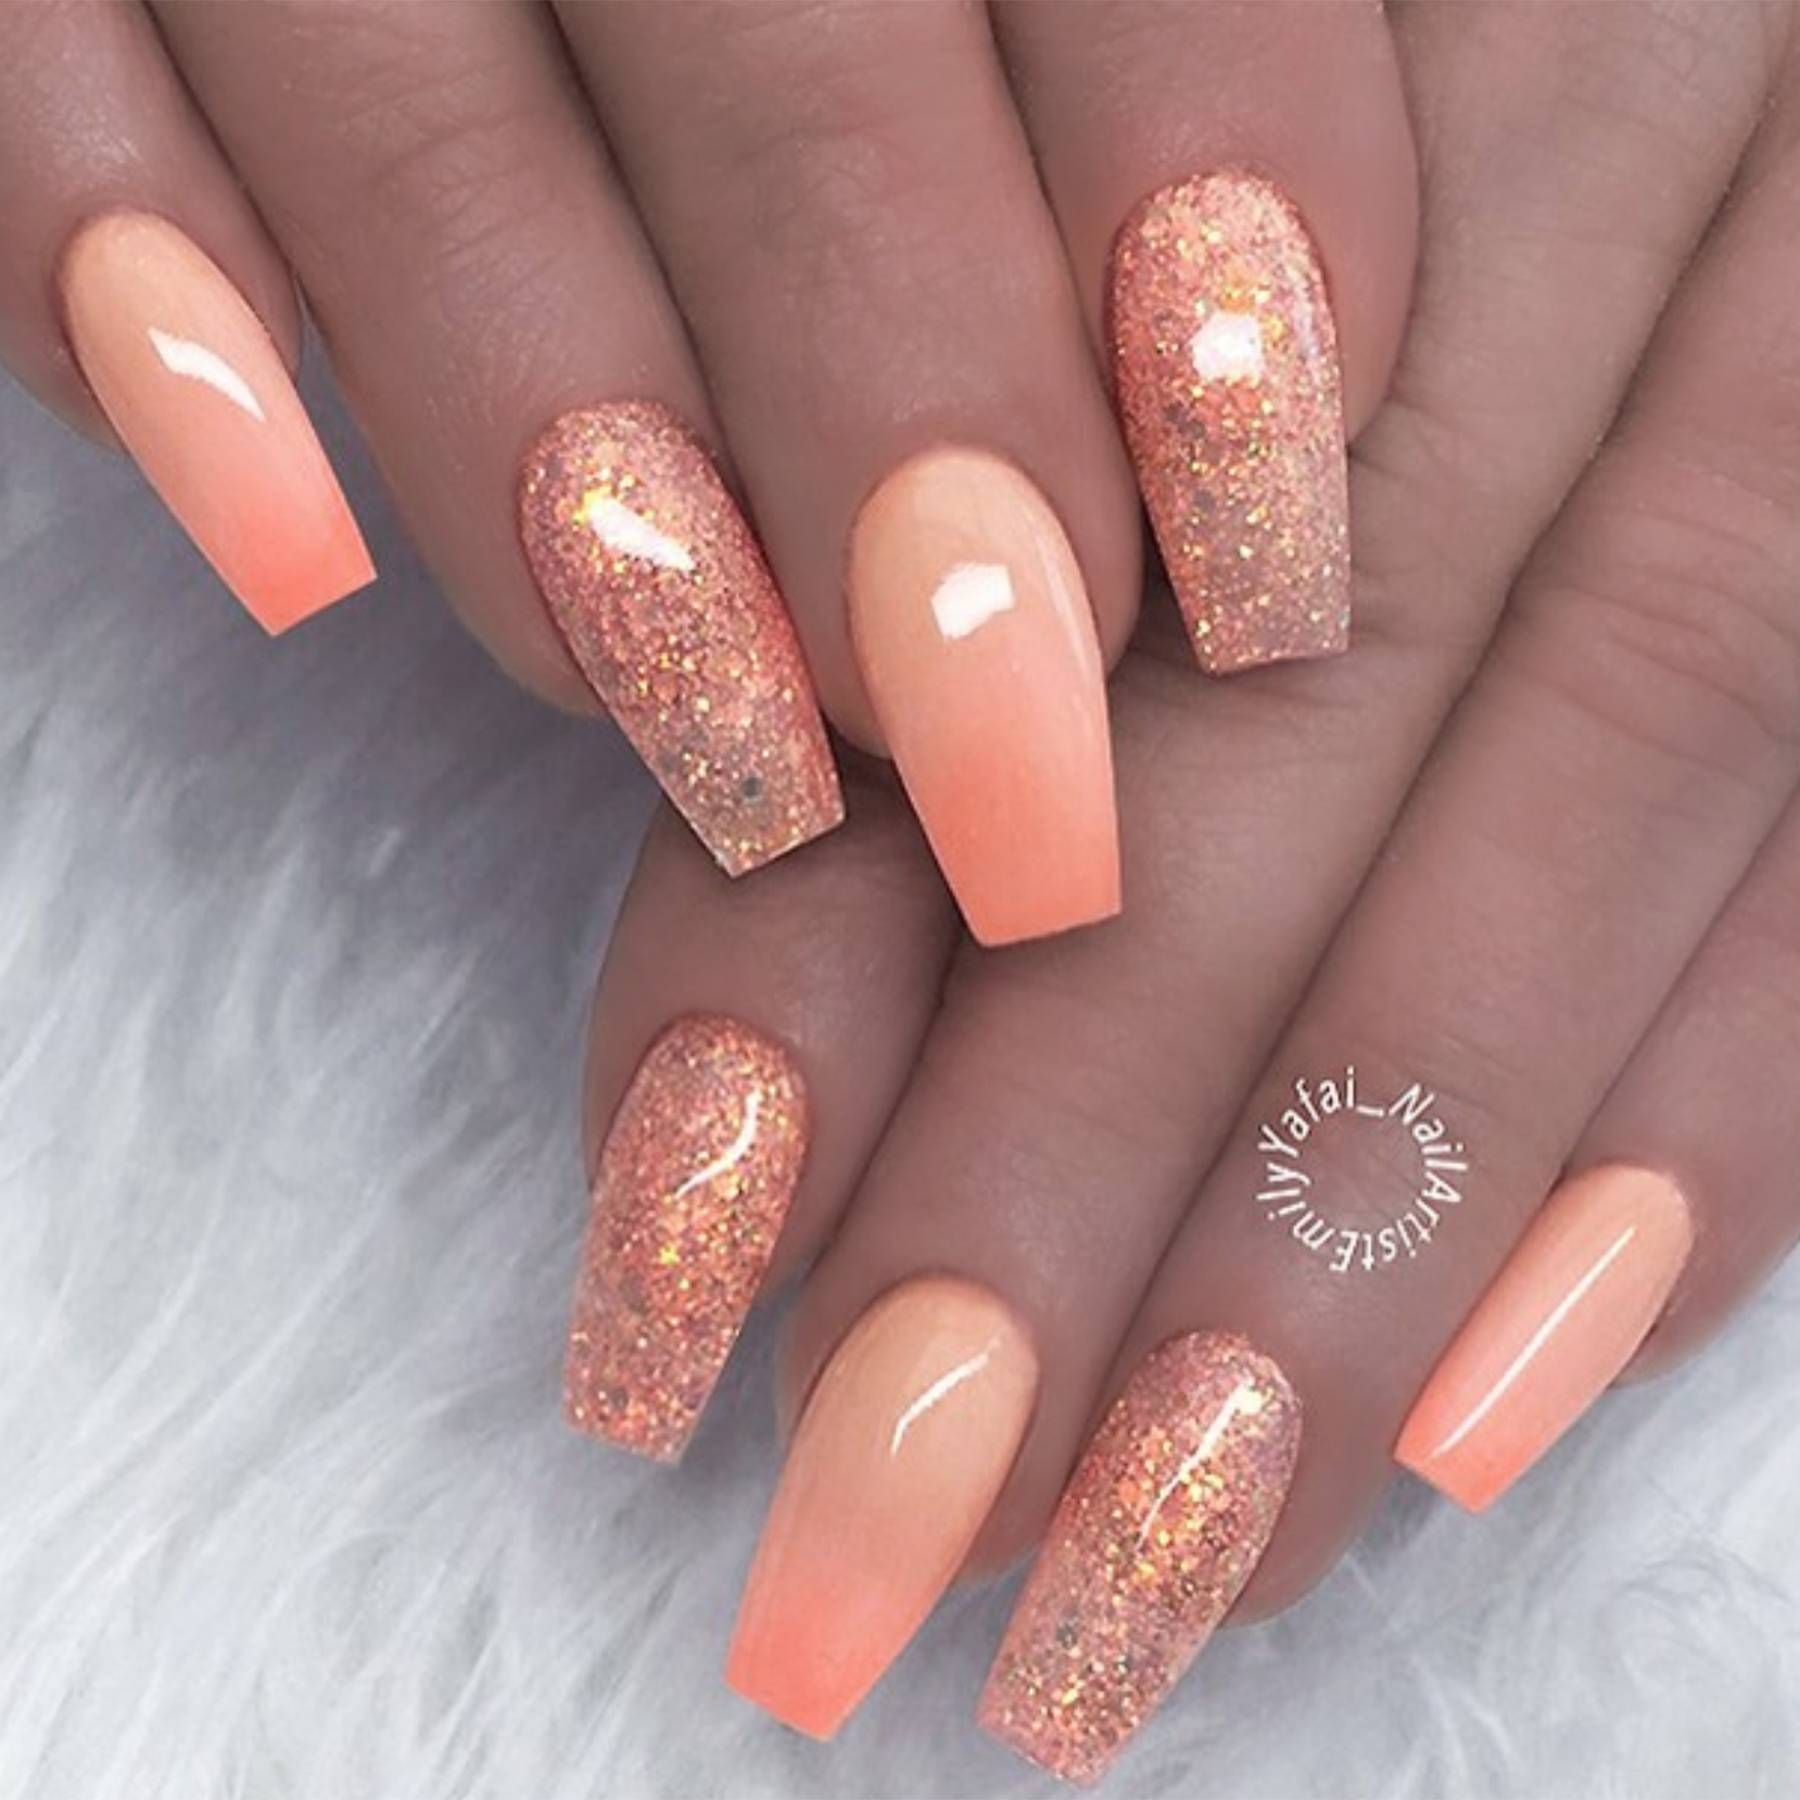 Ombre Nails Are Taking Off Again Because They Re So Simple To Do At Home Ombre Nails Glitter Peach Acrylic Nails Ombre Nail Designs